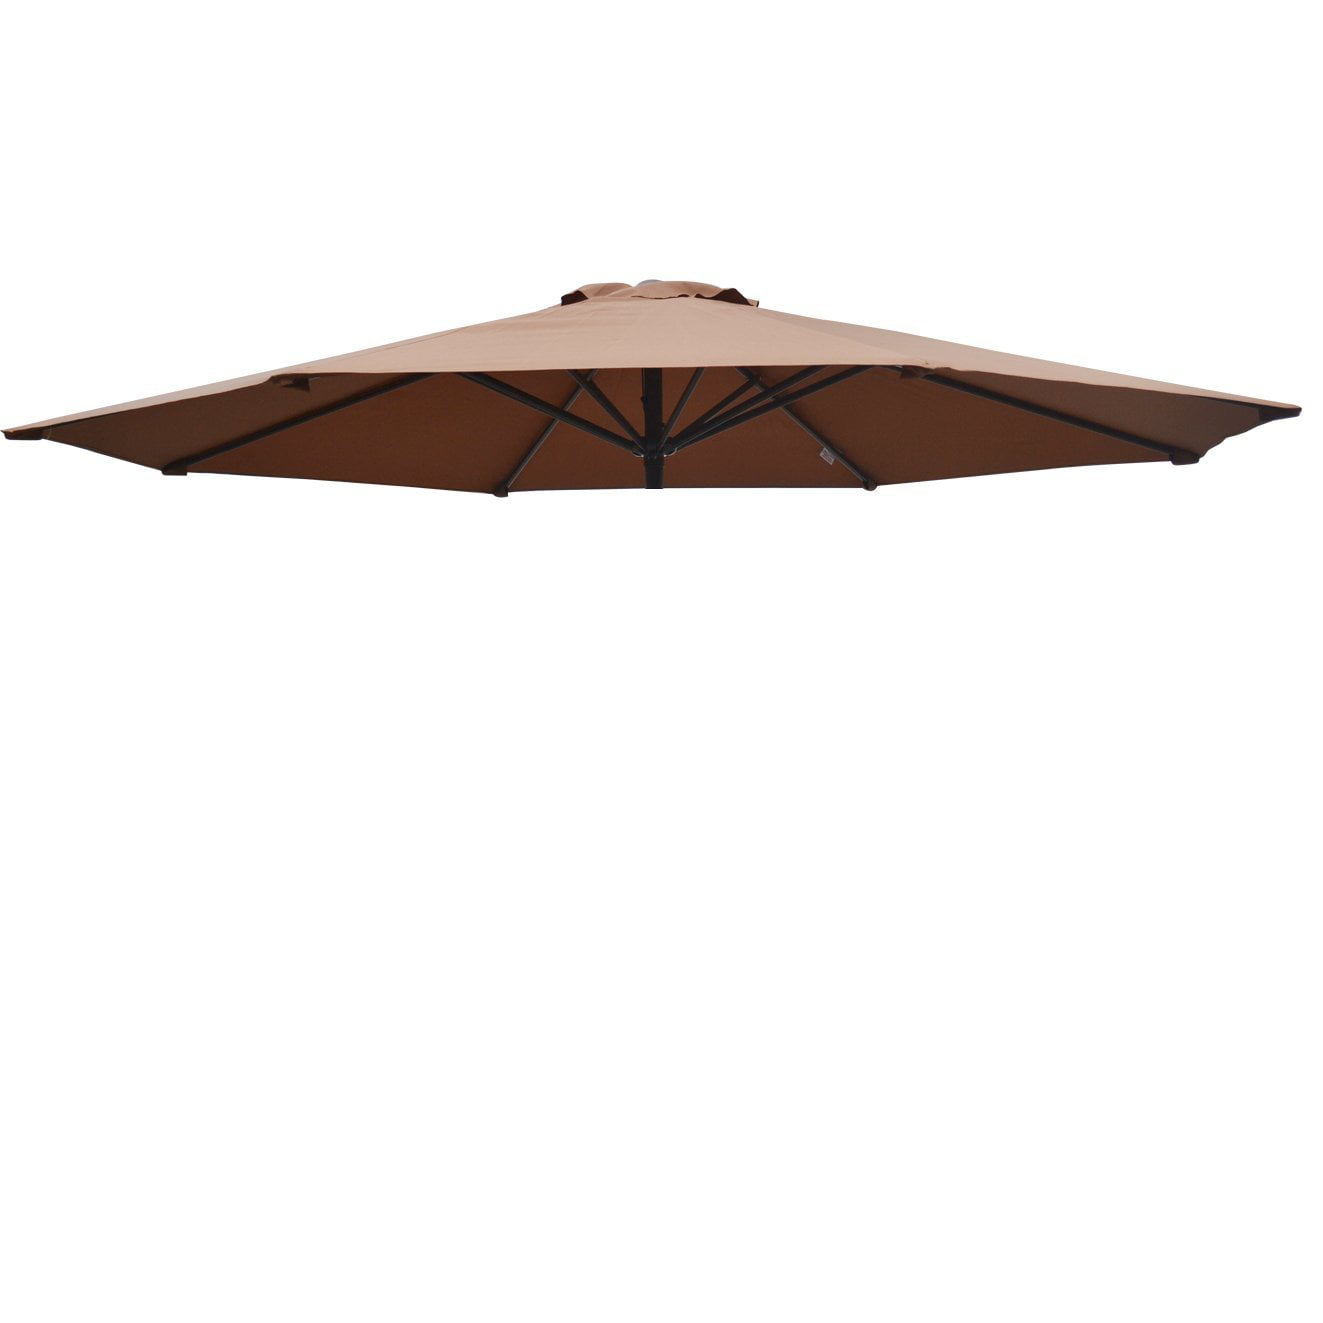 Replacement Patio Umbrella Canopy Cover for 9ft 8 Ribs Umbrella Burgundy (CANOPY ONLY) by Sunny Outdoor Inc.